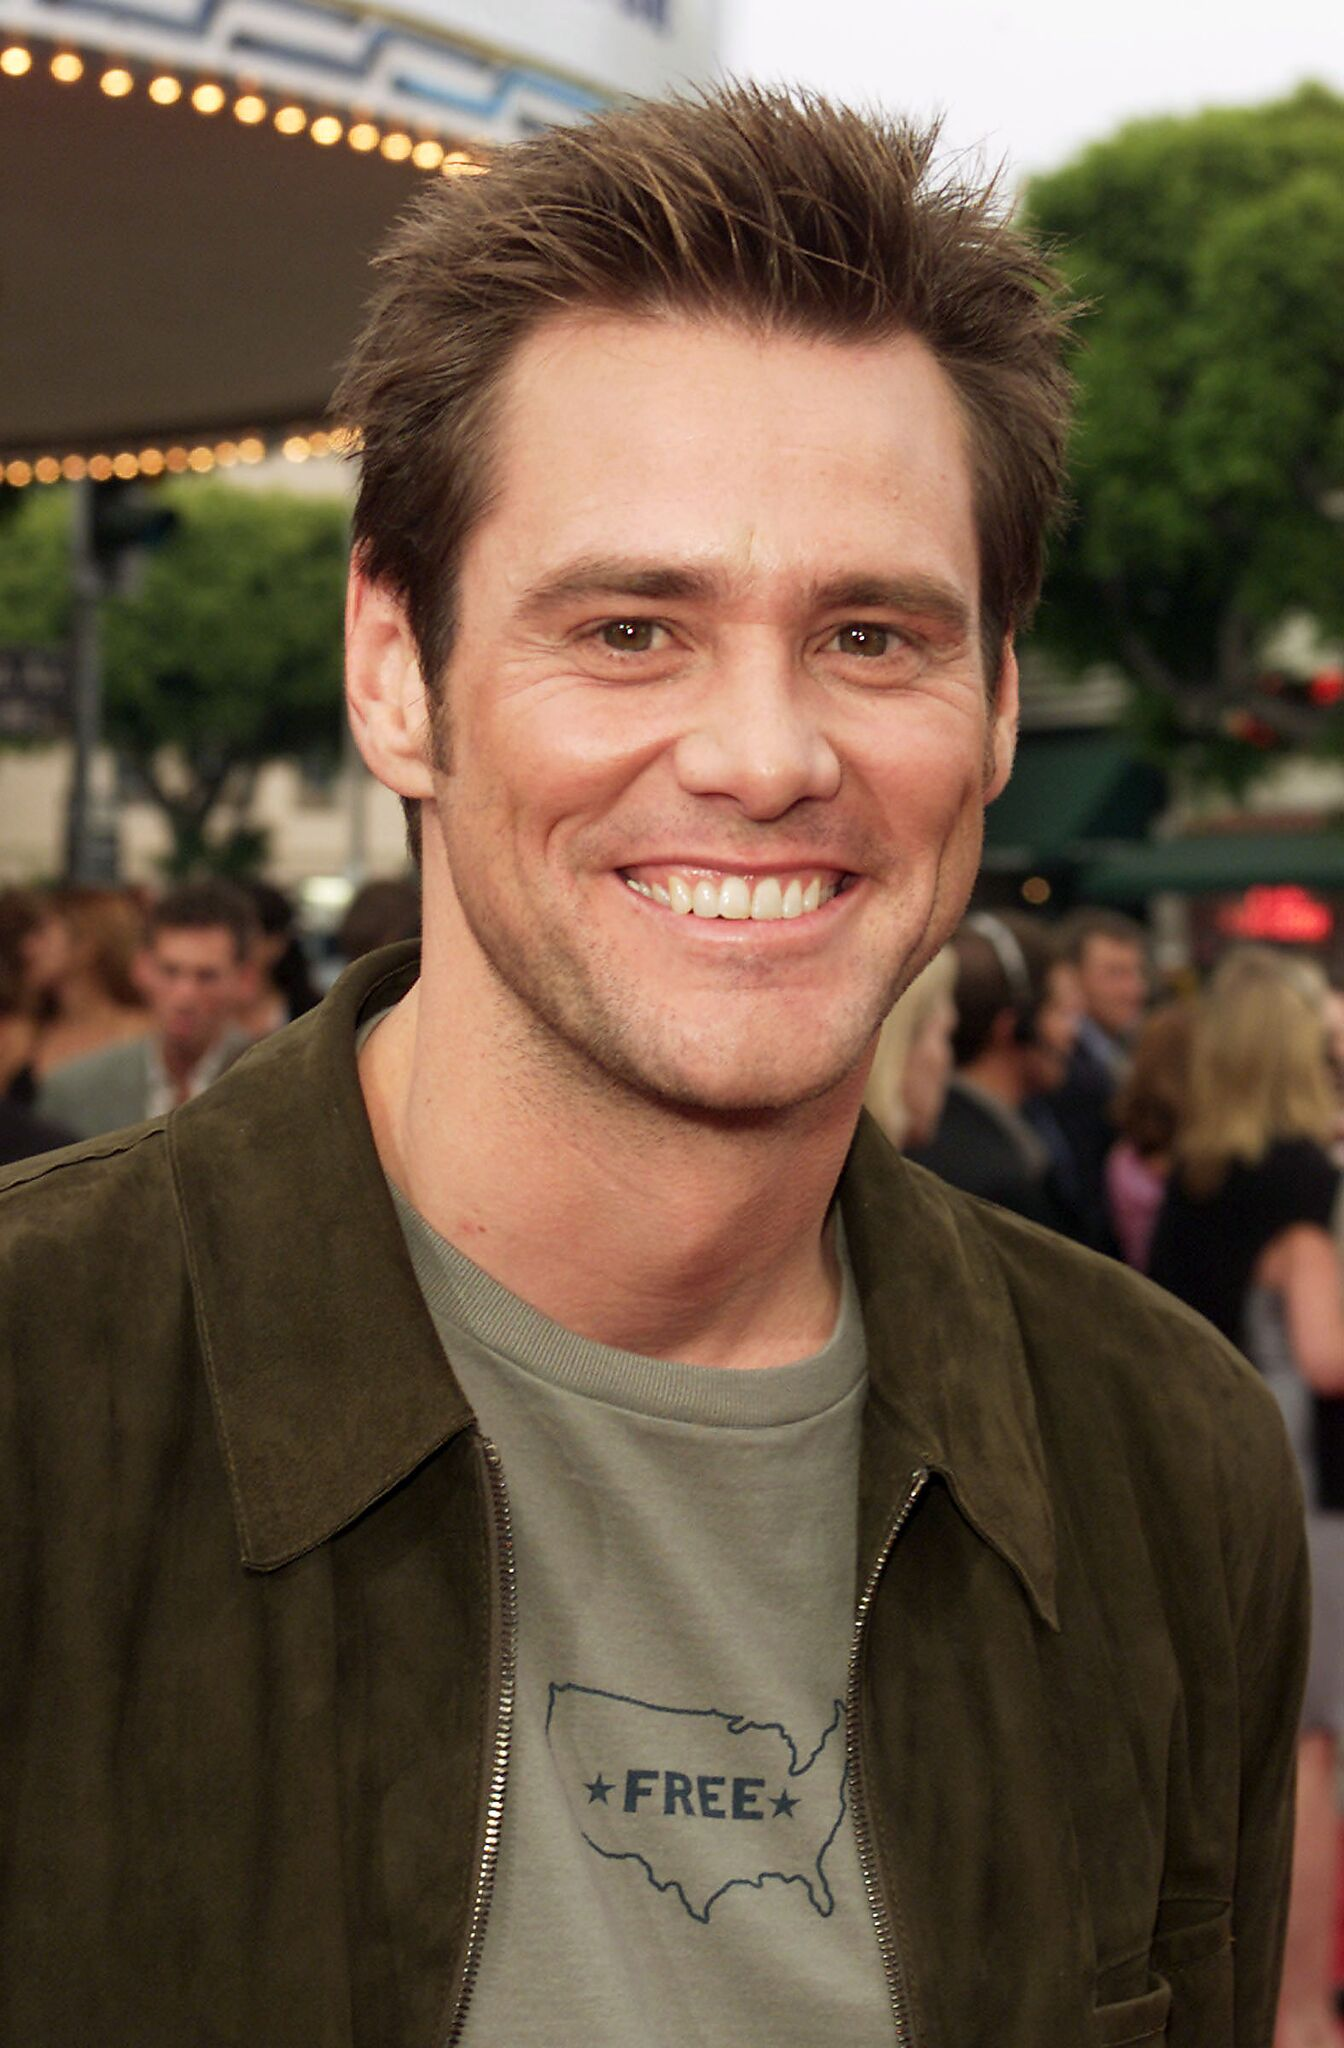 Jim Carrey at the premiere of 'Me, Myself & Irene' at the Village Theater in Westwood, California | Getty Images